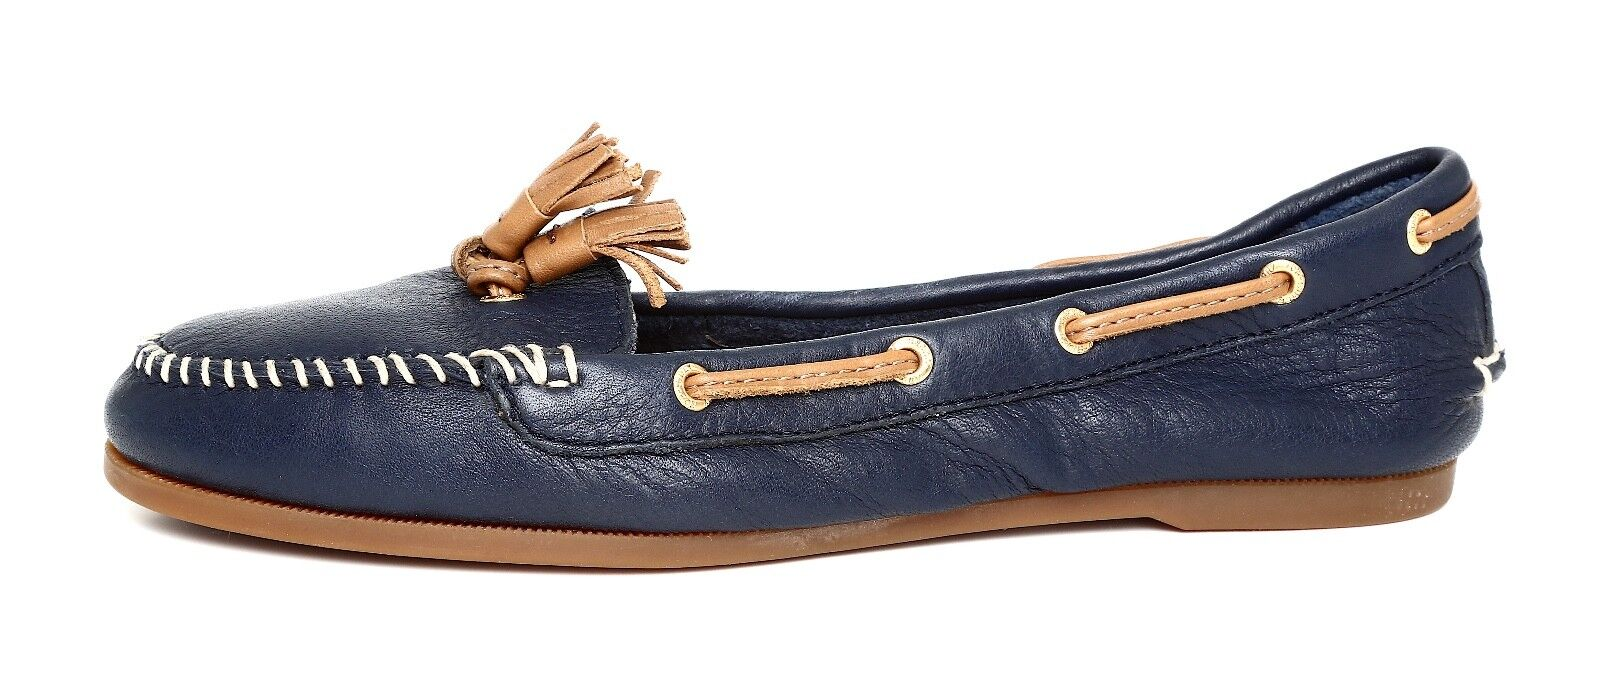 Sperry Top Sider Sabrina Women's Navy Leather Moccasins Sz 6M 3284